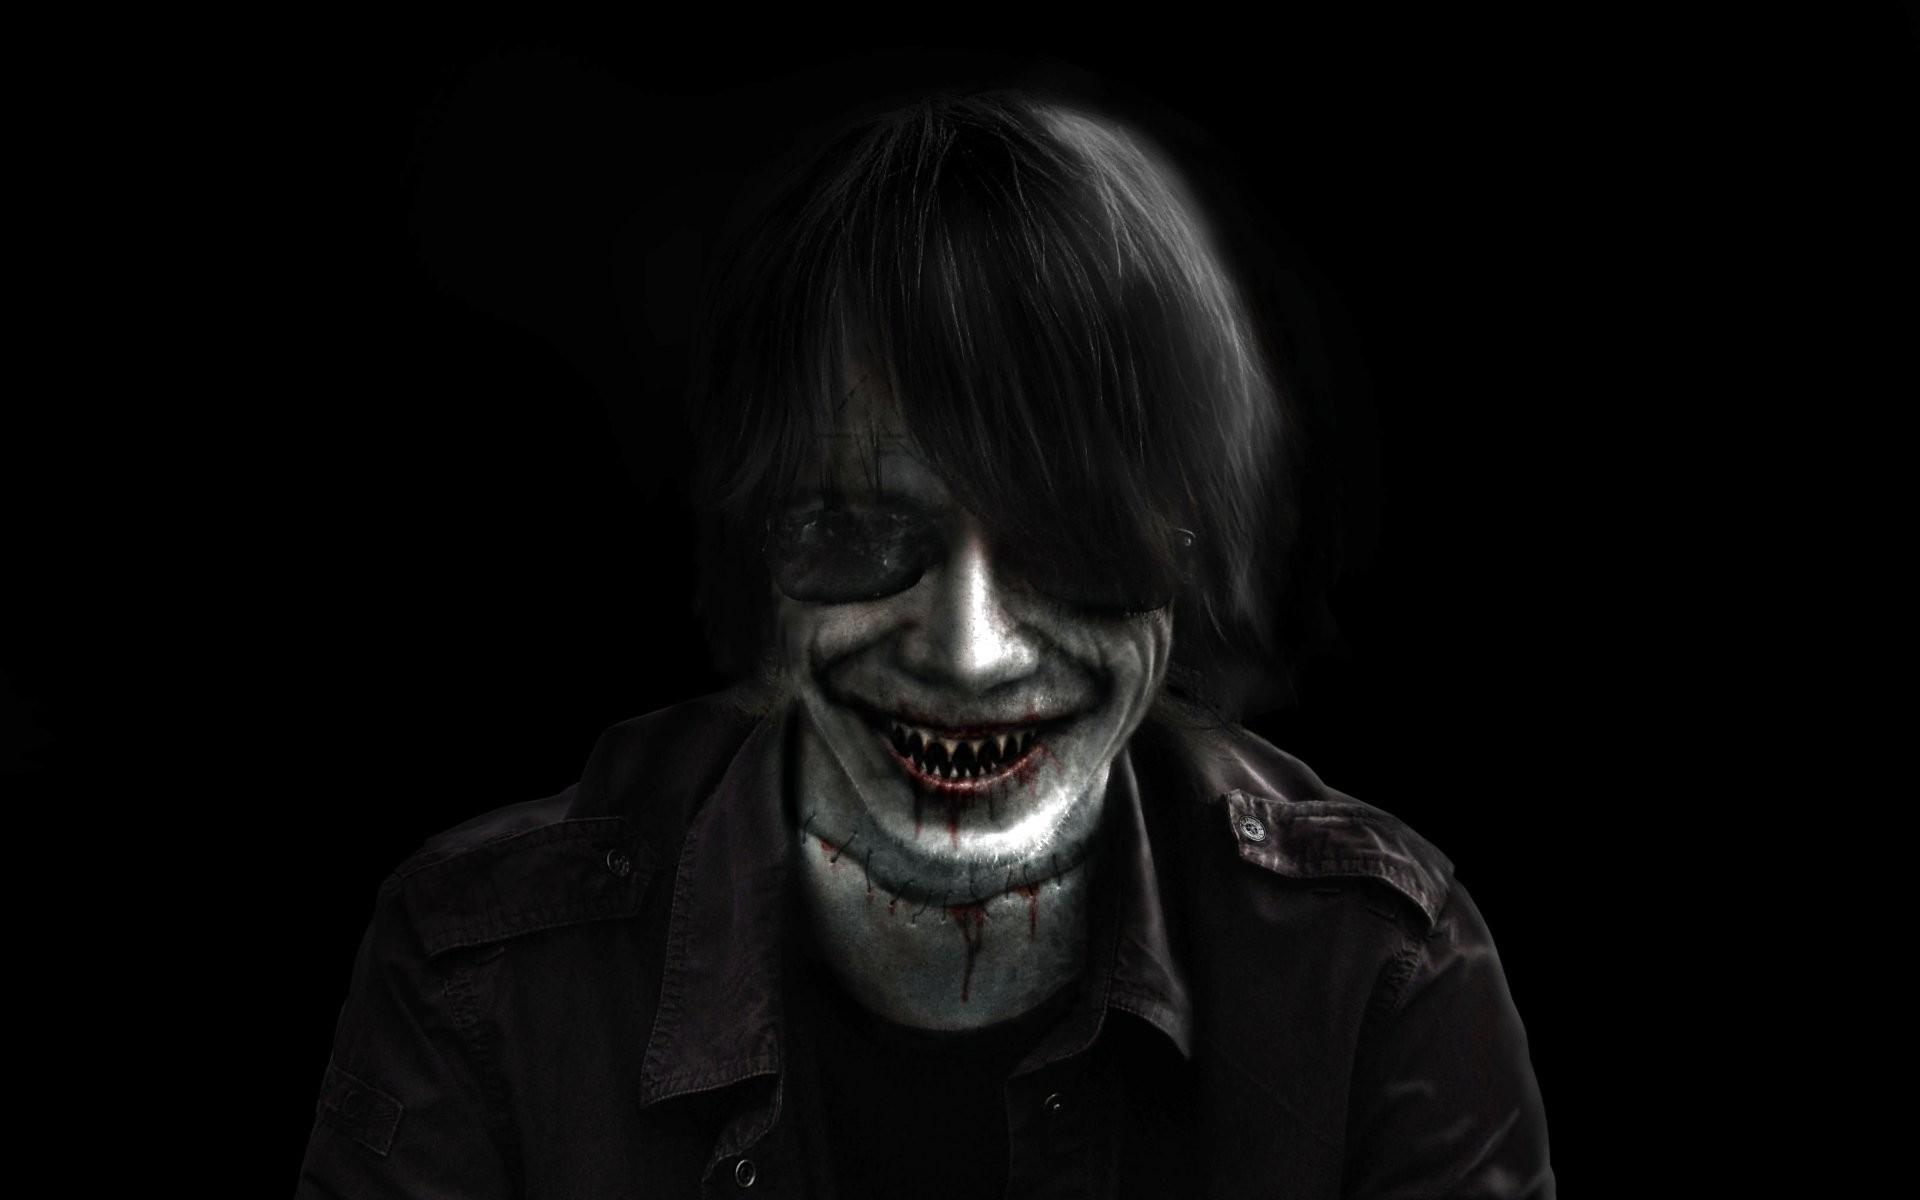 Evil Anime Smiles HD Wallpapers - Wallpaper Cave